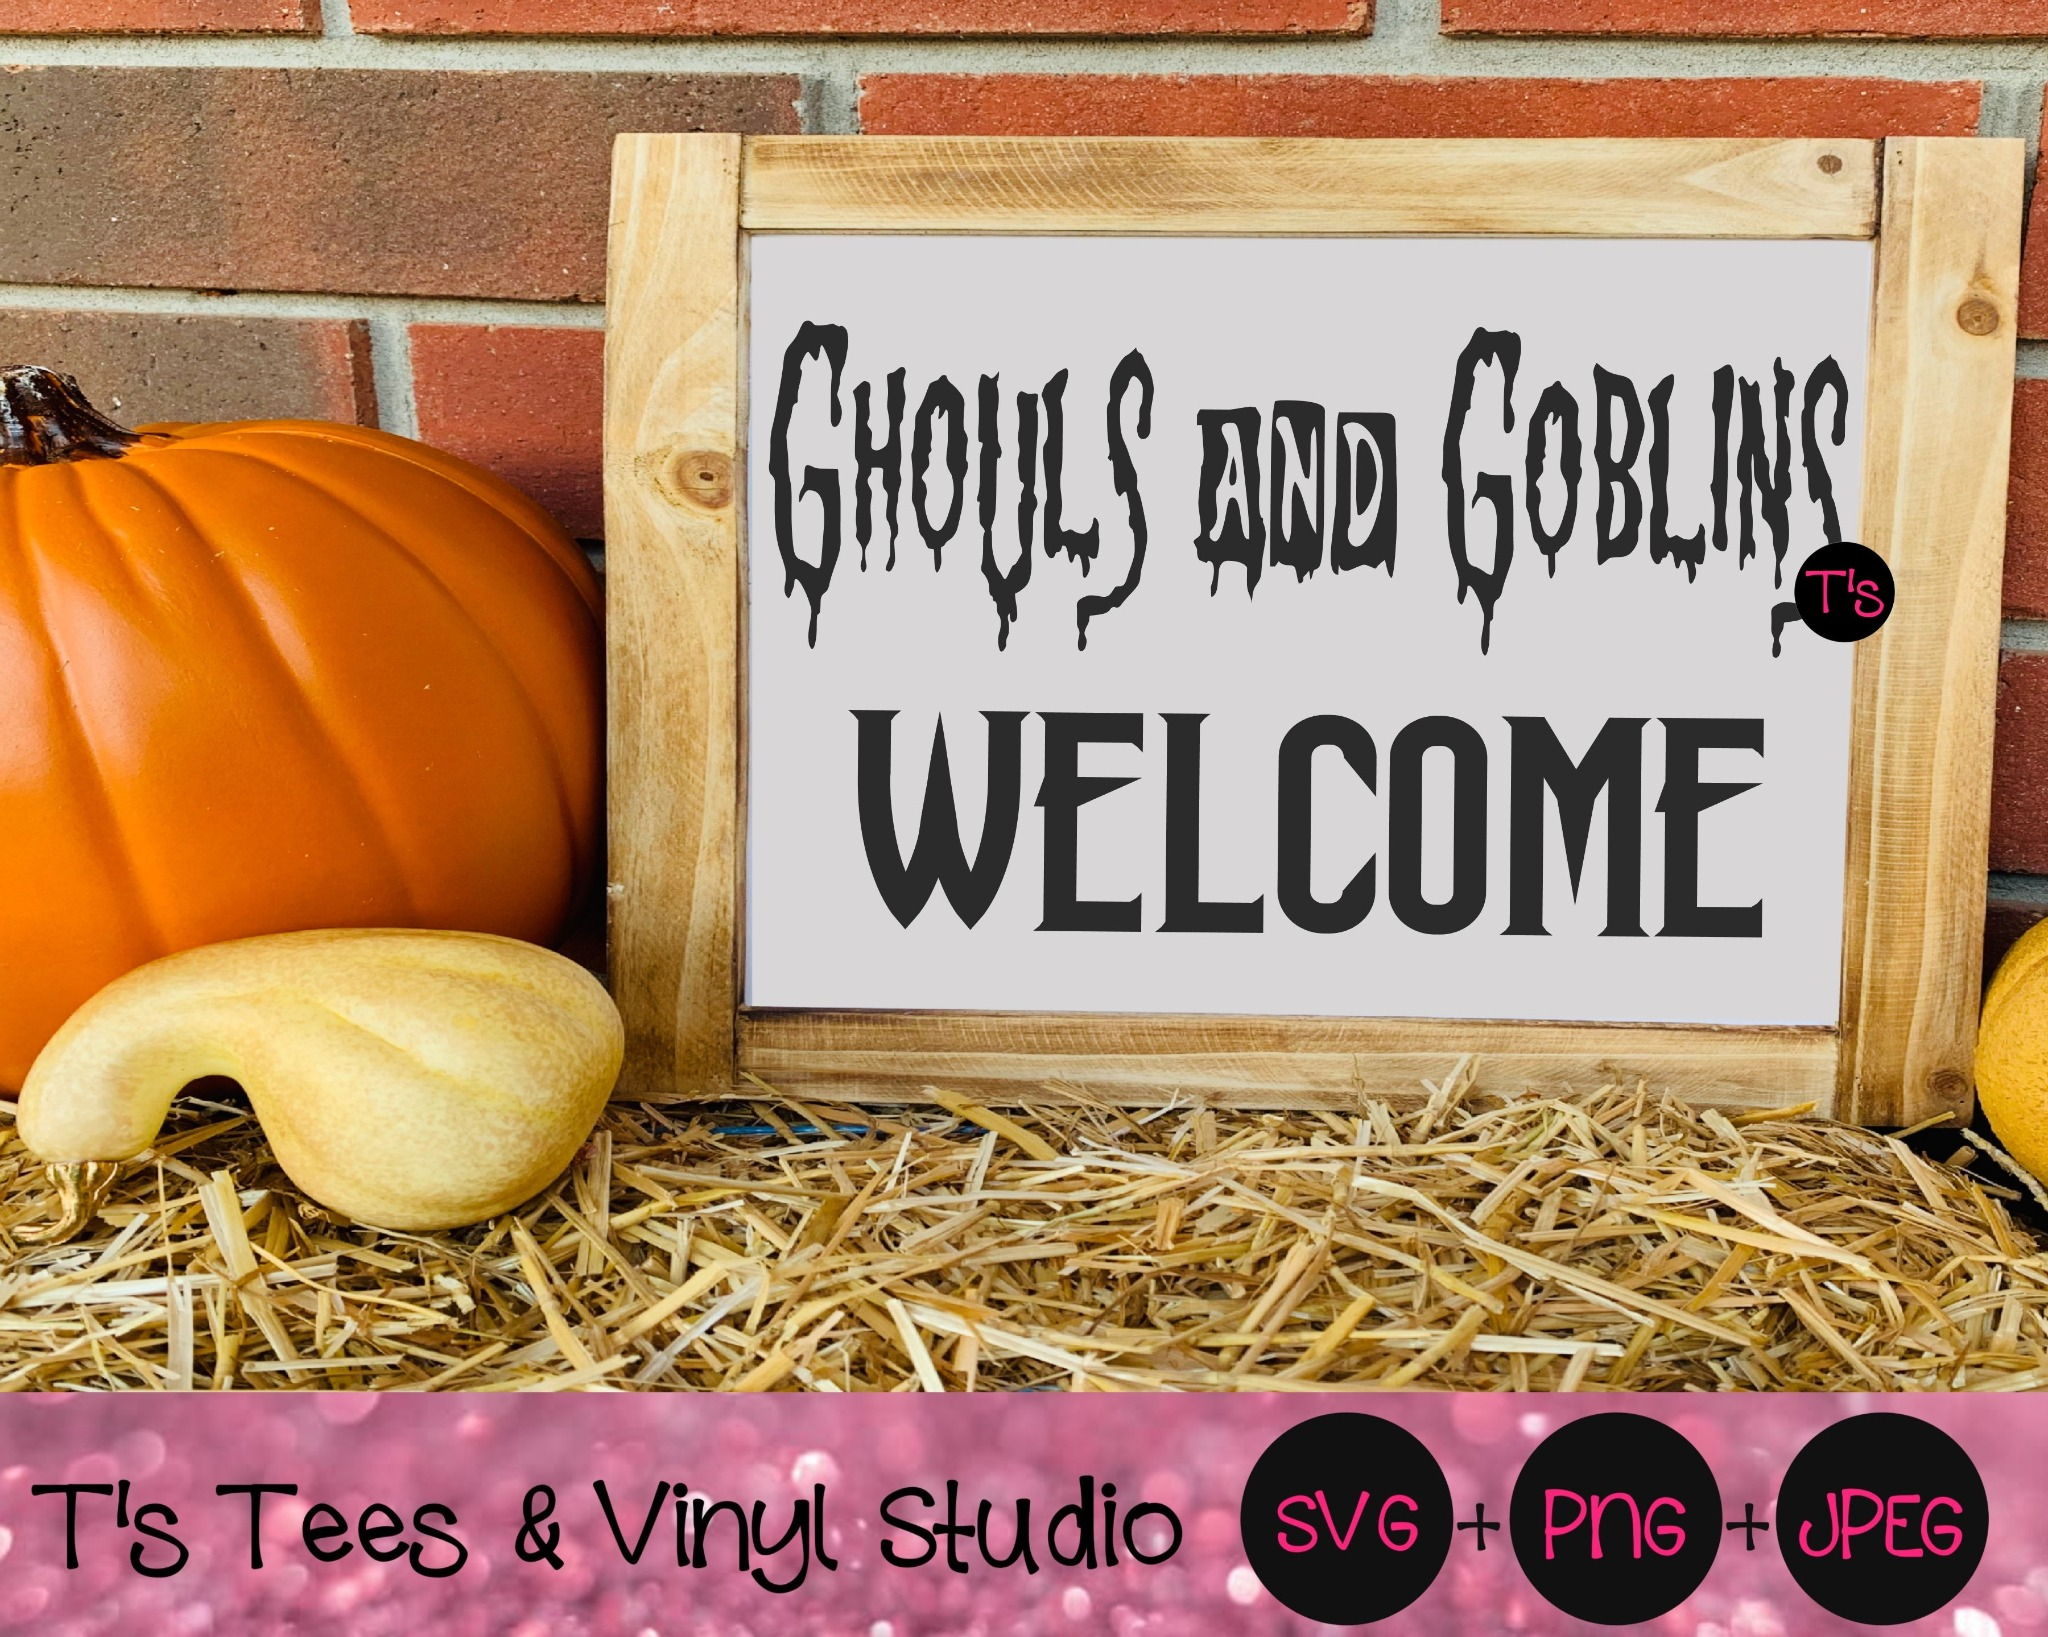 Ghouls And Goblins Welcome Svg, Halloween Svg, Trick Or Treat Svg, Costume Svg, Ghouls Svg, Goblins